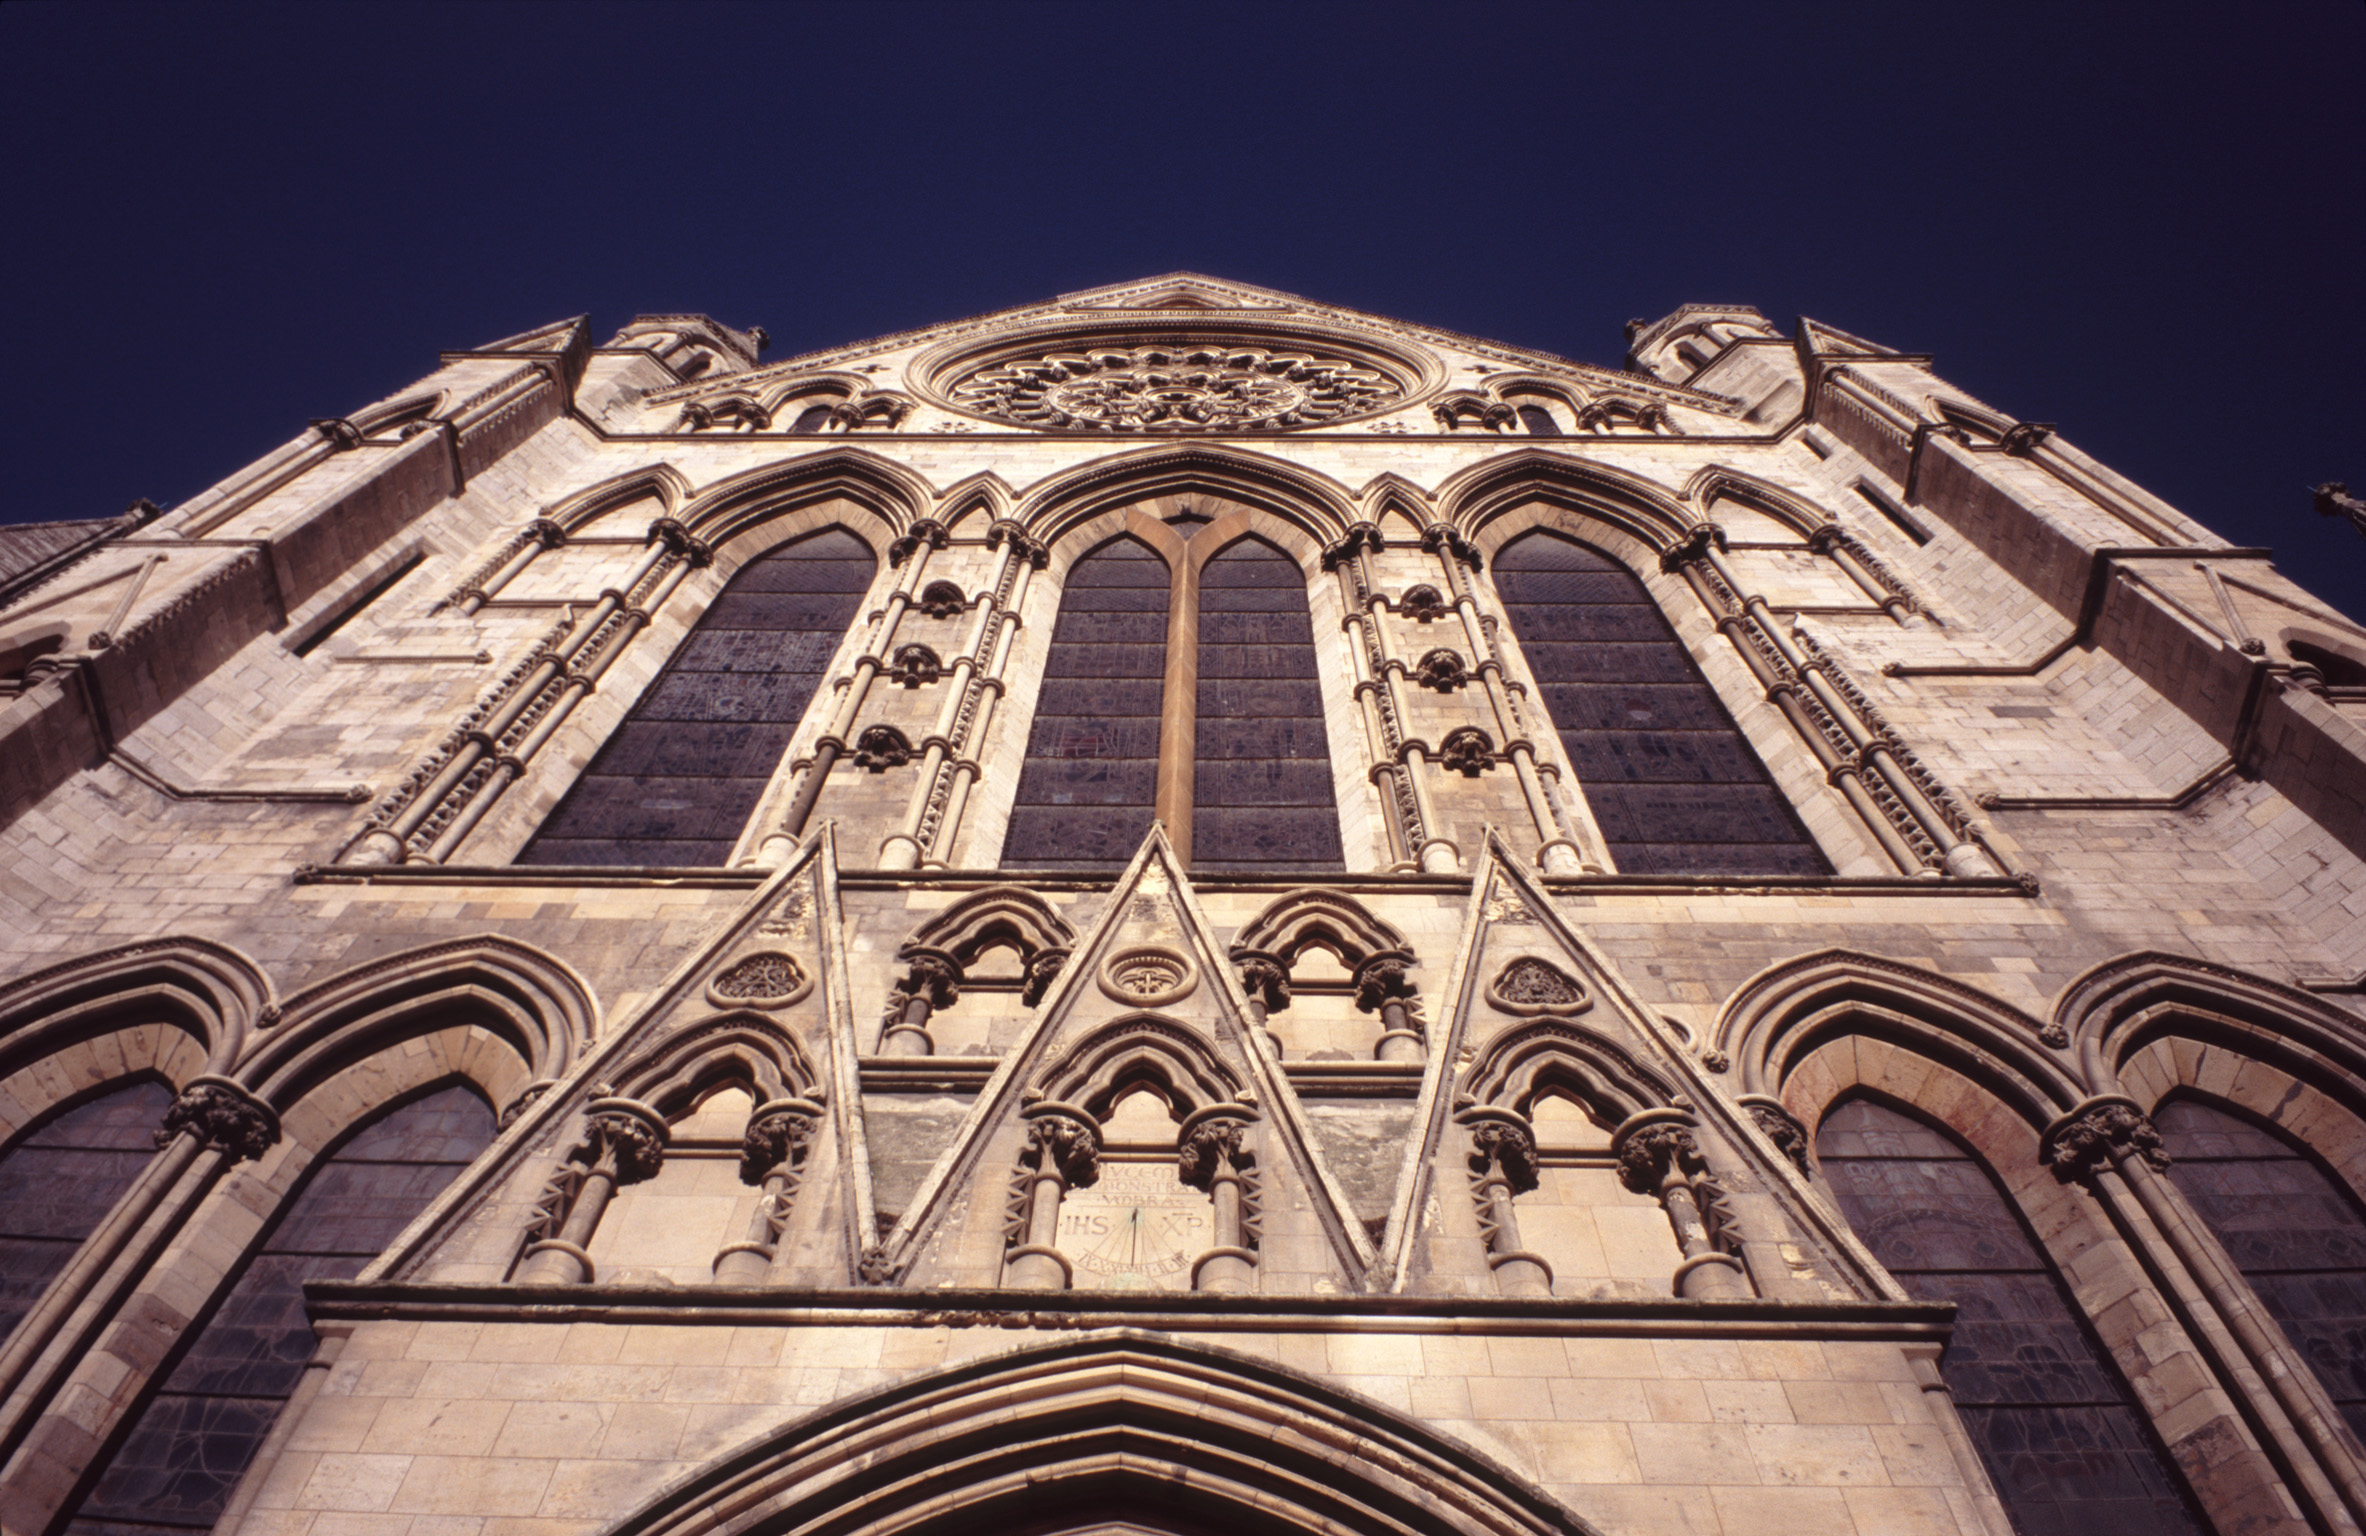 Looking up at the arched windows on the stone exterior facade of York Minster Cathedral, York, UK